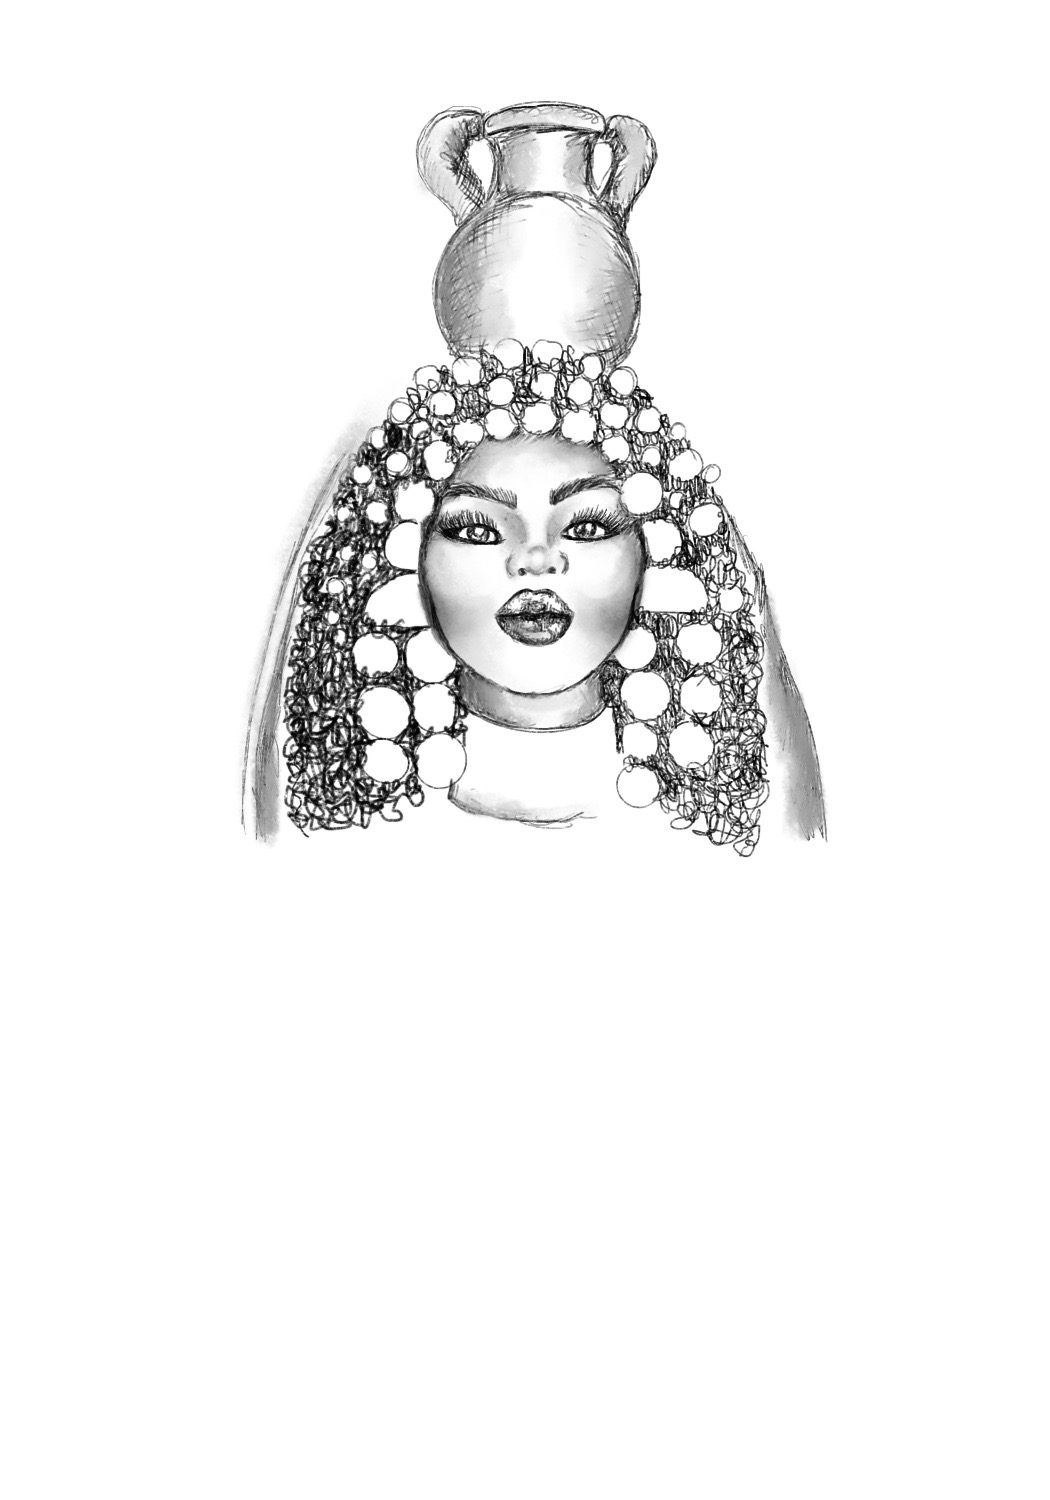 Tanit - African Goddess Initiation by Abiola Abrams